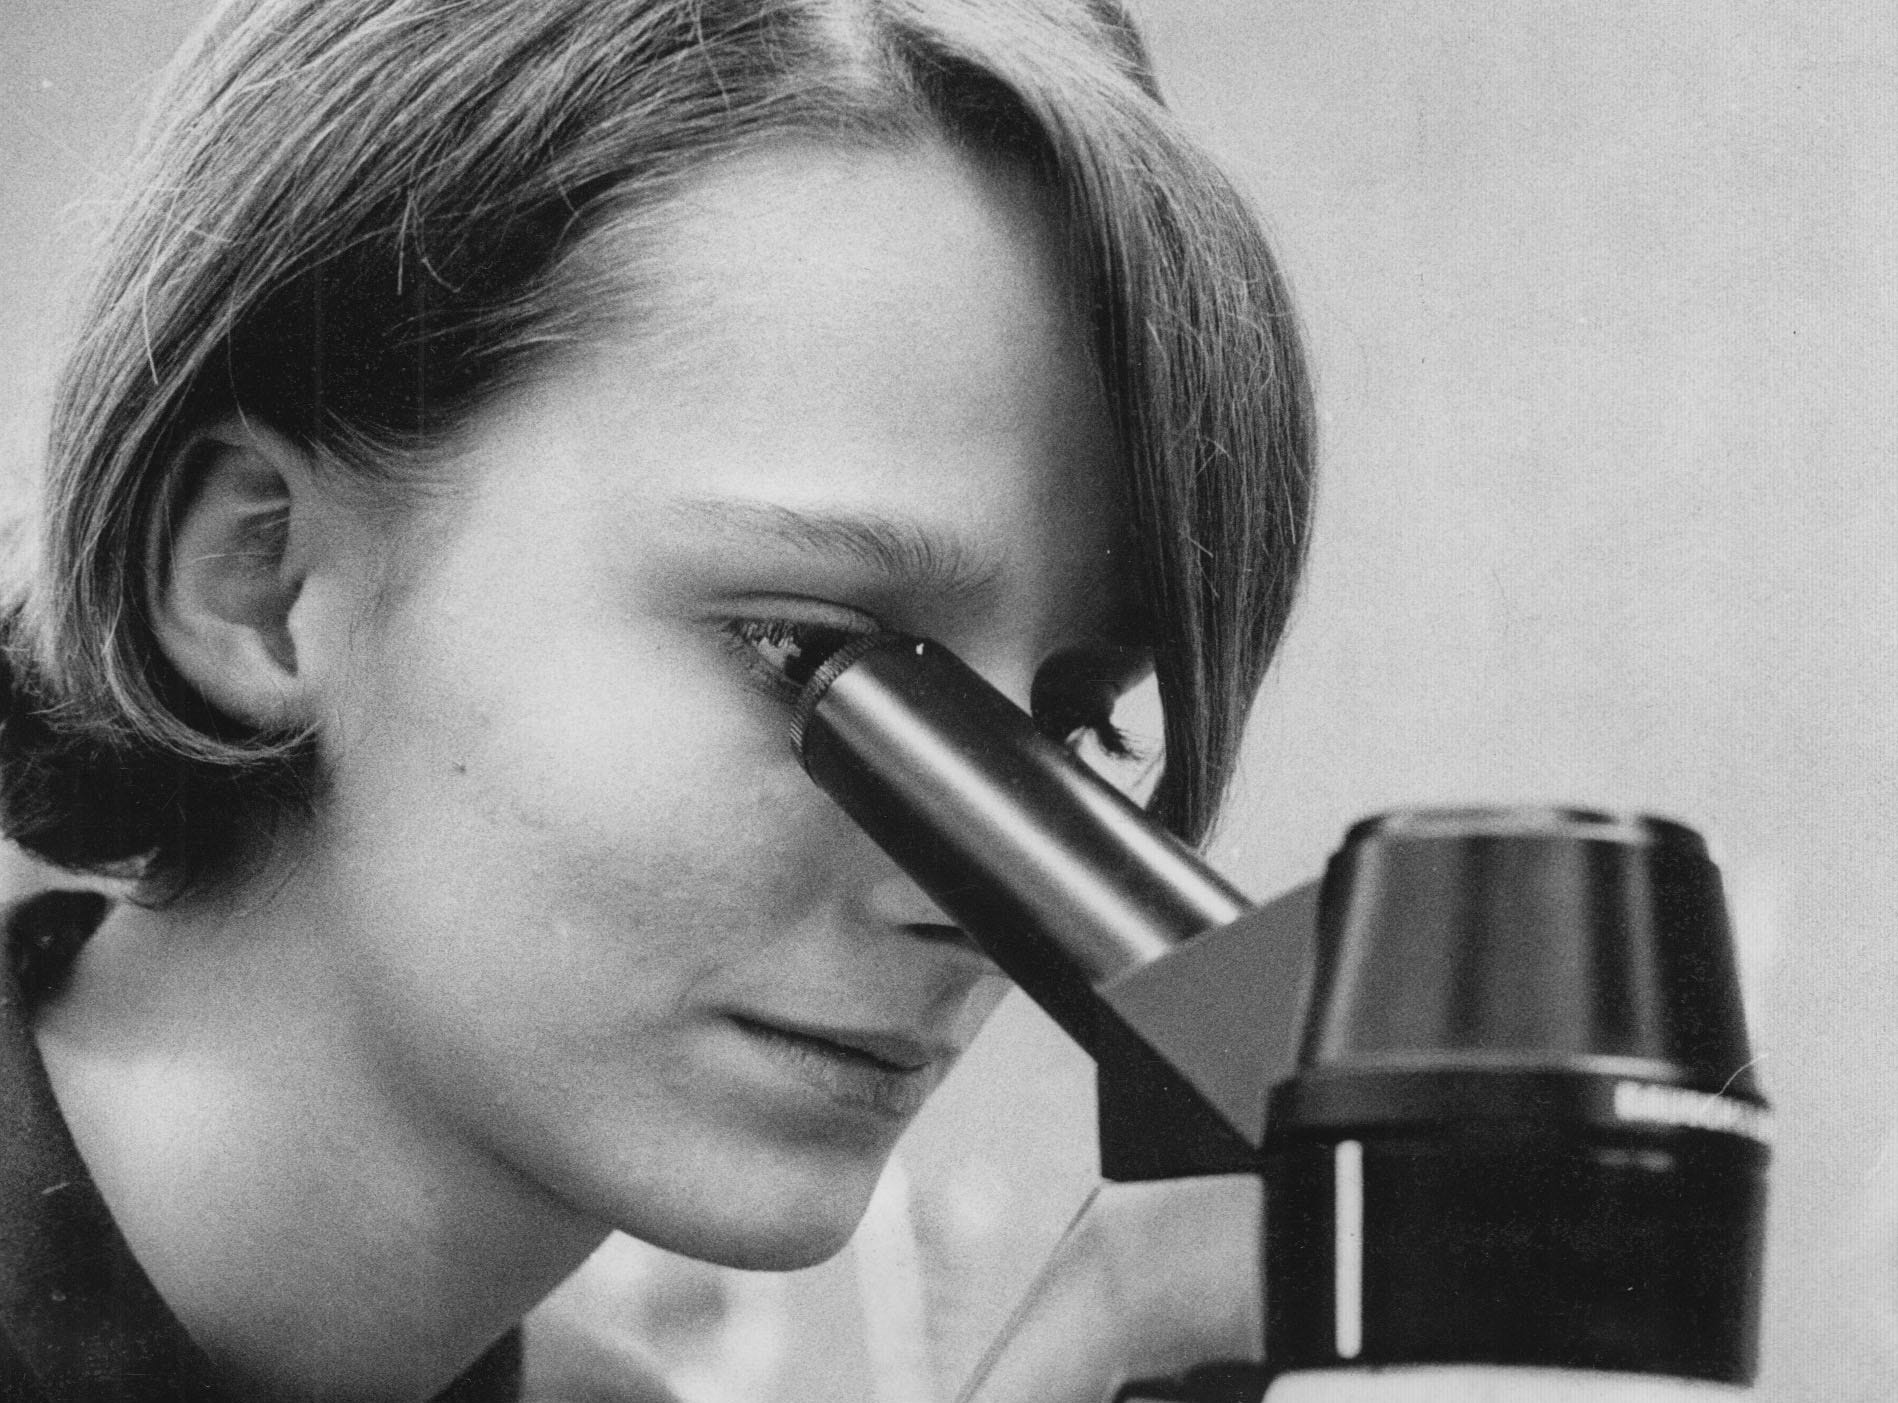 Marshall student, Lou Ann Roemer, examines a slide under a microscope in a science class in 1967.